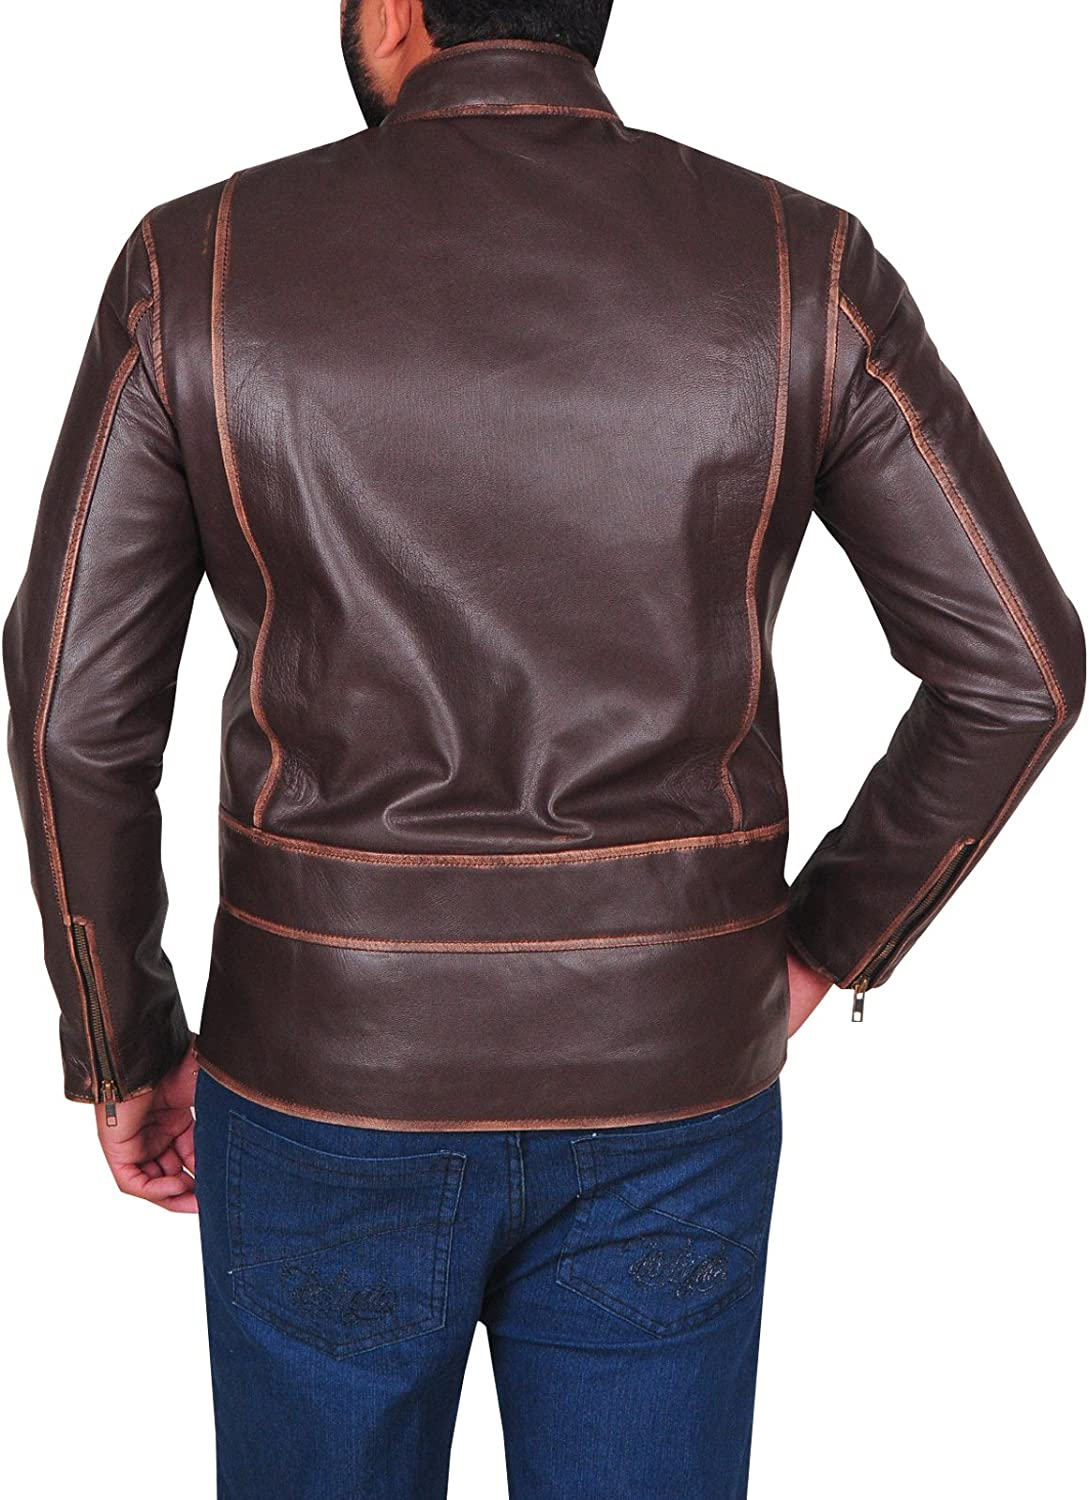 Top Leather Jackets Mens Brown Slimfit Genuine Lambskin Rubbuff Leather Jacket